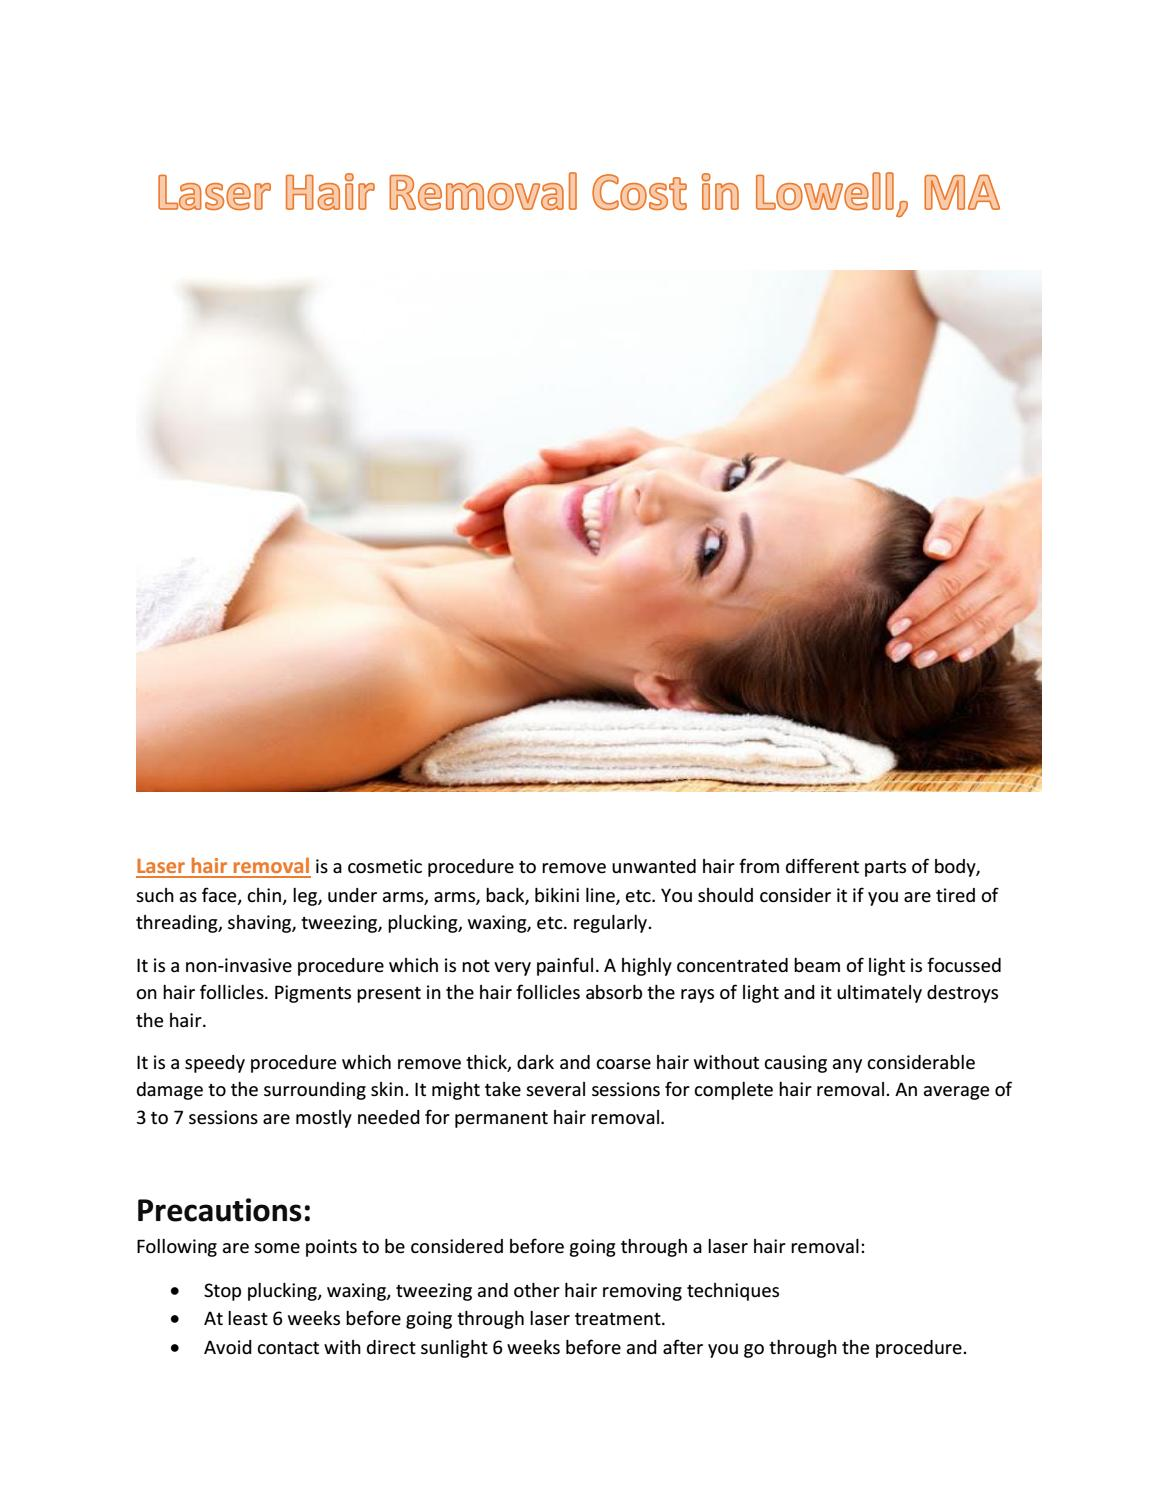 Laser Hair Removal Cost In Lowell Ma By Bostonveincare43 Issuu